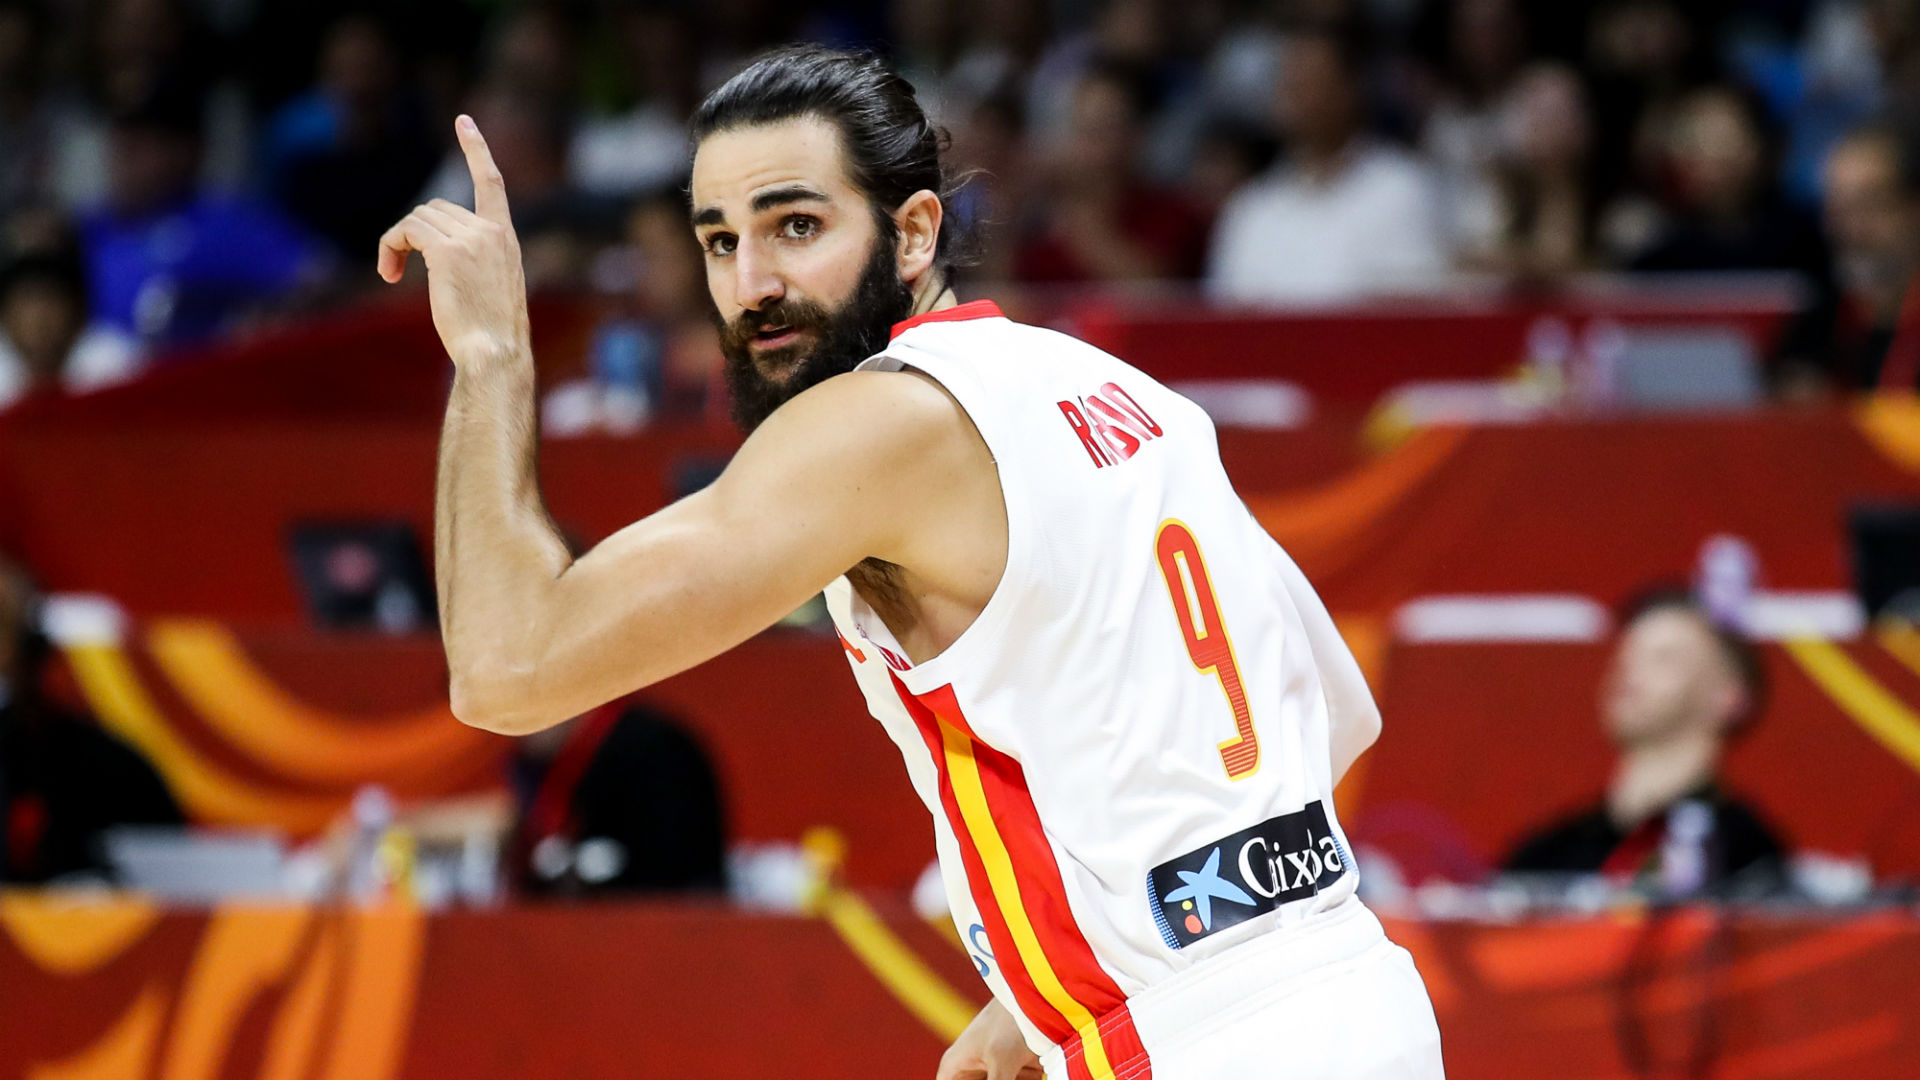 FIBA World Cup 2019: Ricky Rubio leads Spain past Argentina in final